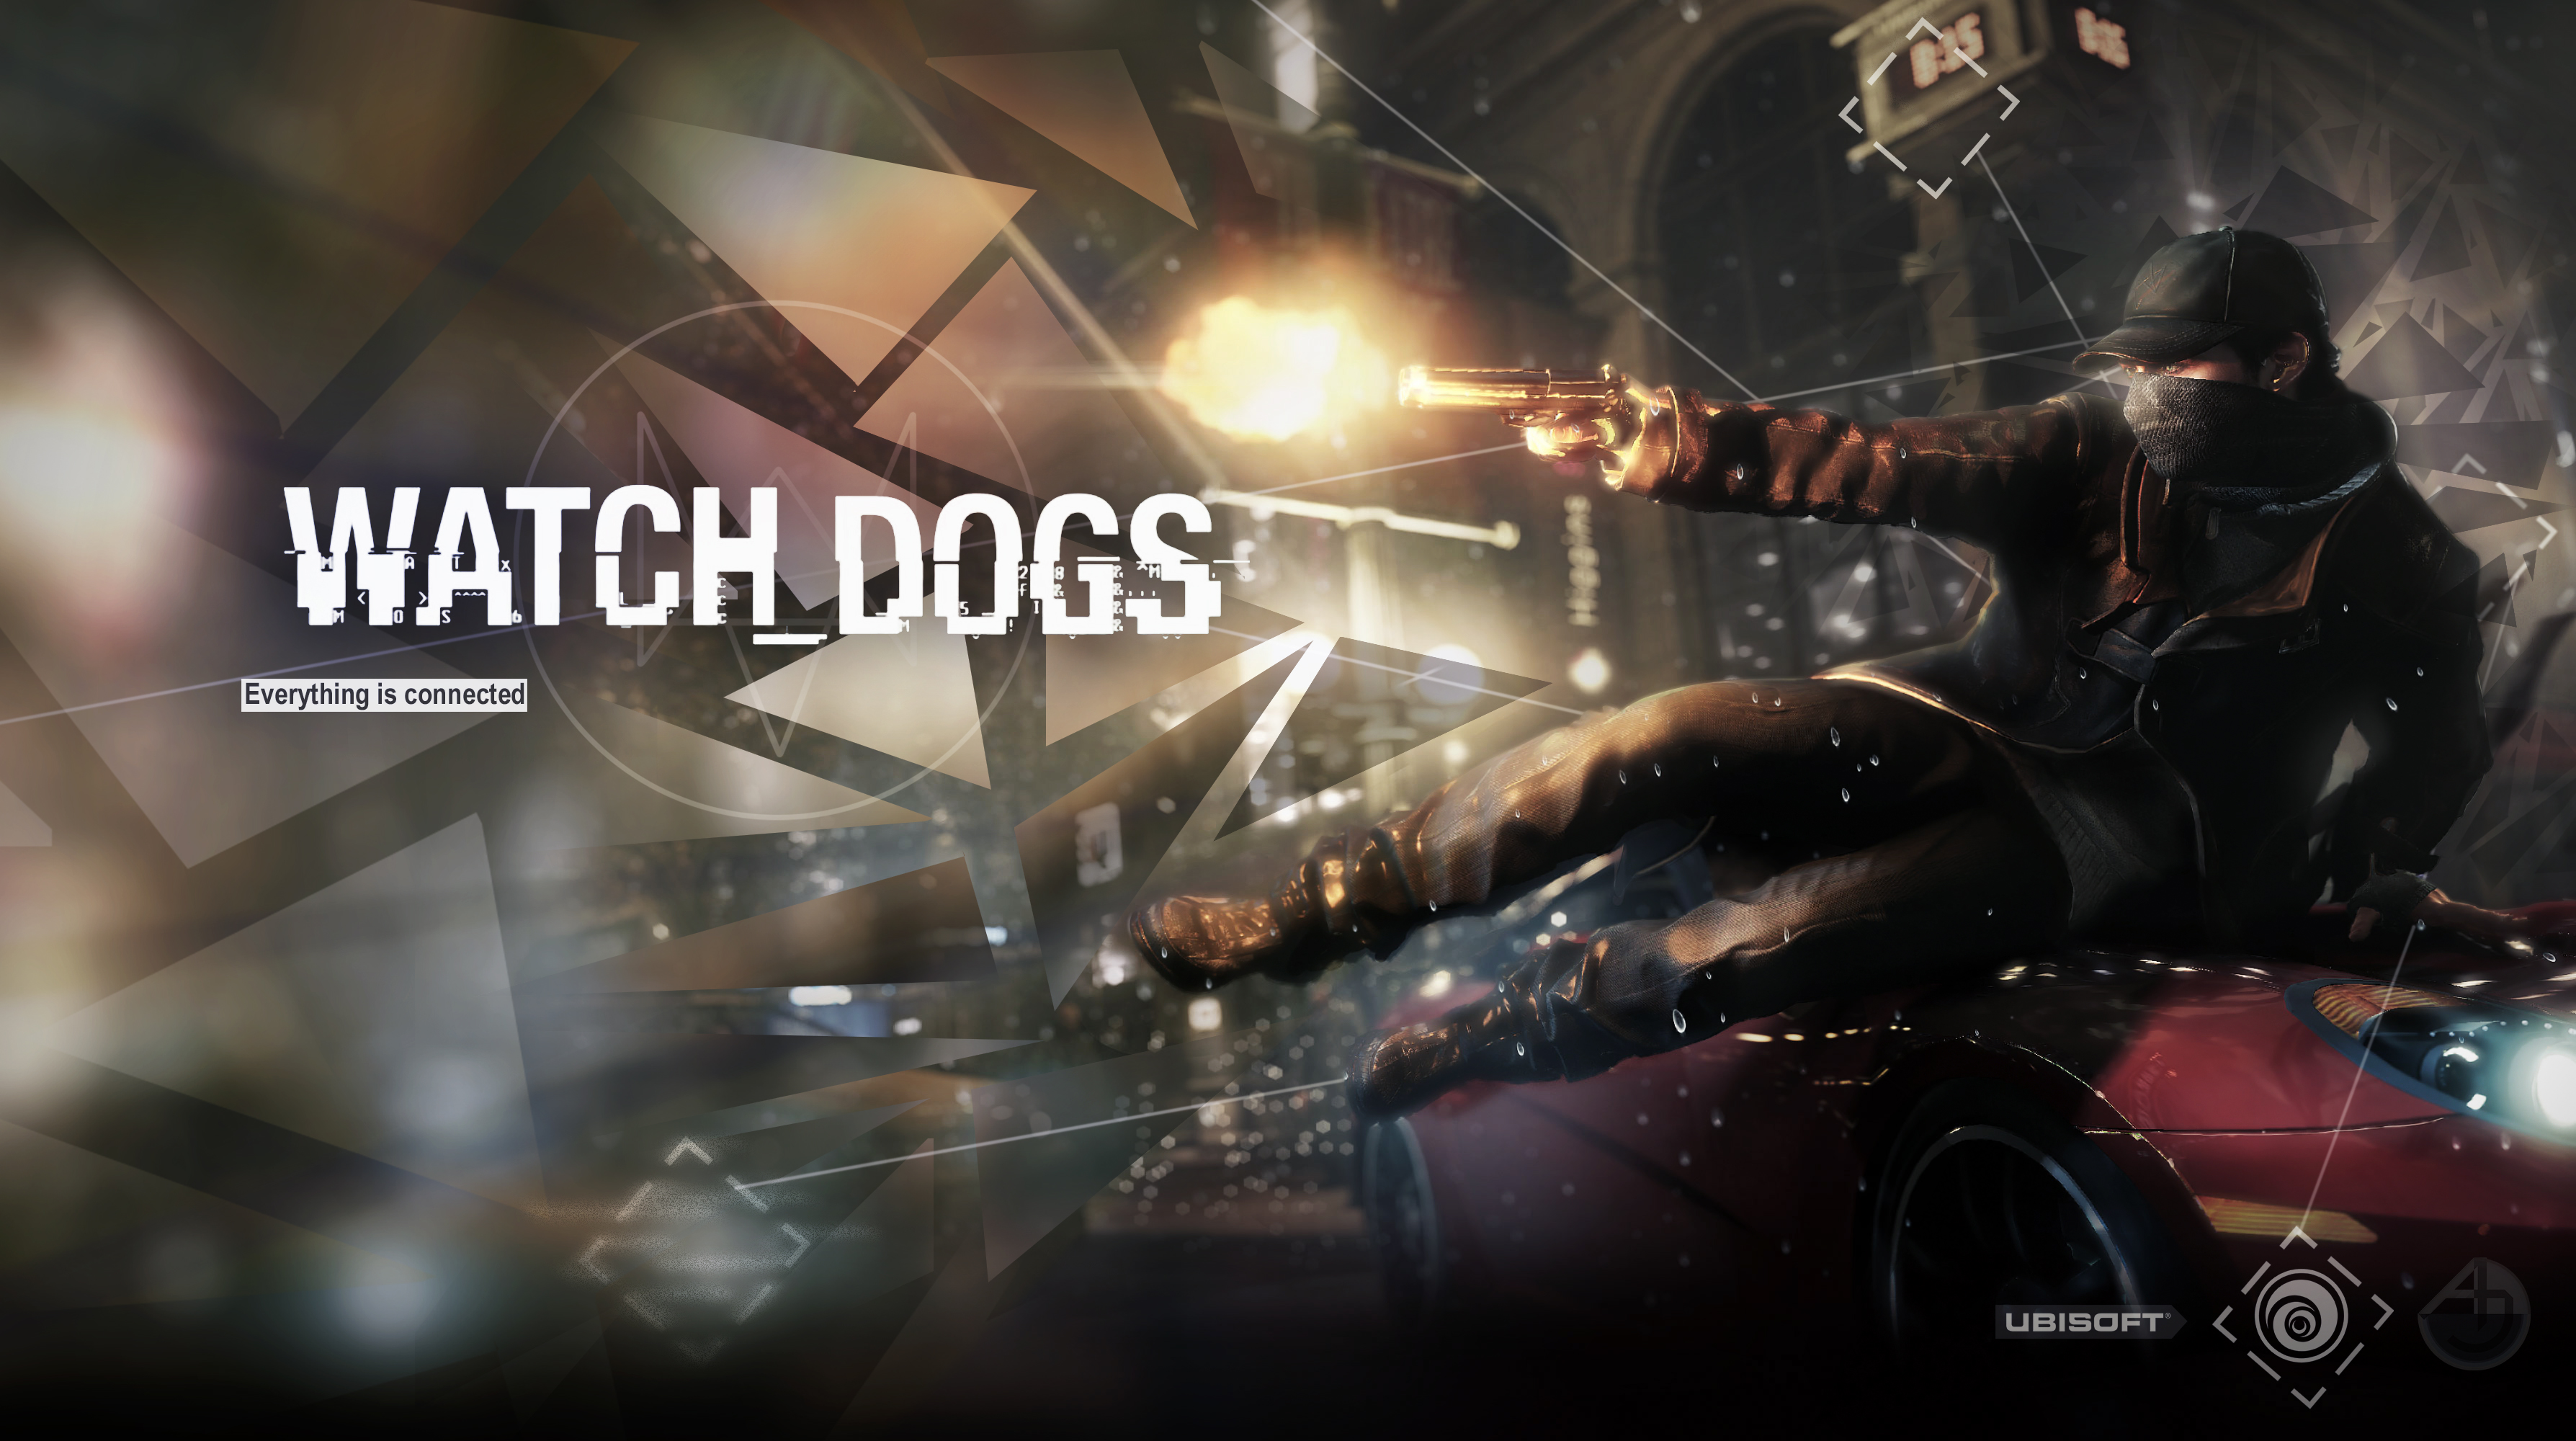 Free Download Watch Dogs Wallpaper 3576x2000 For Your Desktop